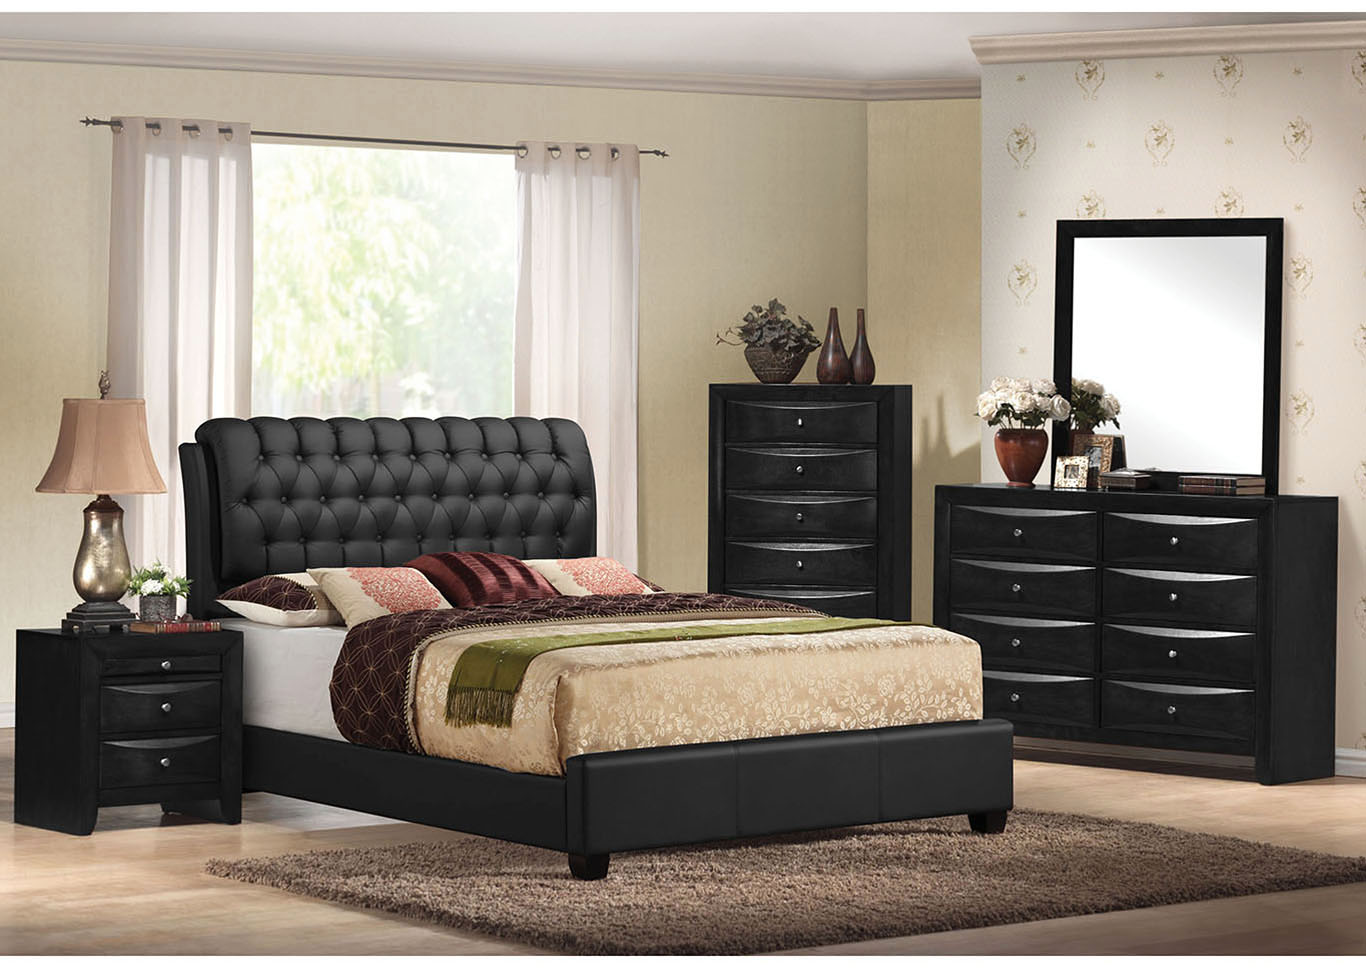 Ireland II Black Upholstered Queen Bed w/Dresser and Mirror,Acme